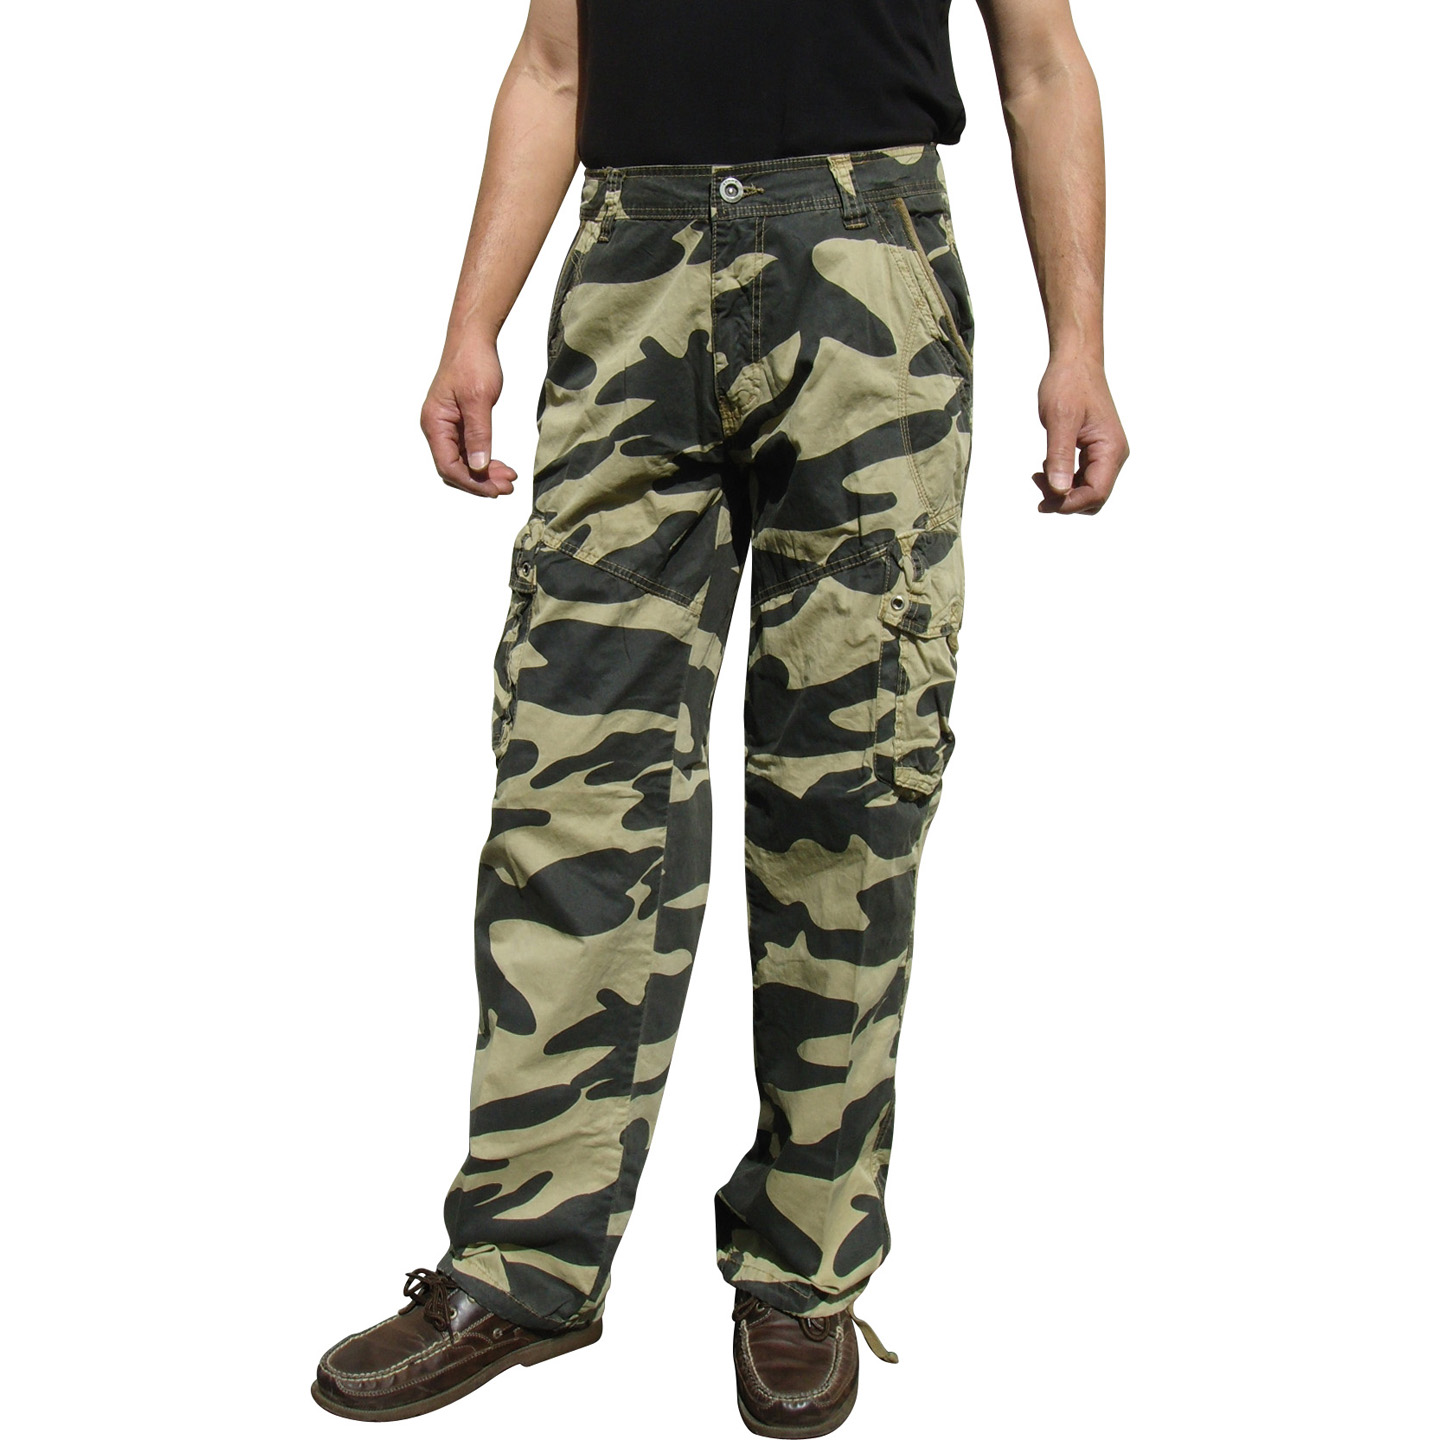 Mens Military-Style Camoflage Cargo Pants #27C1 32x32